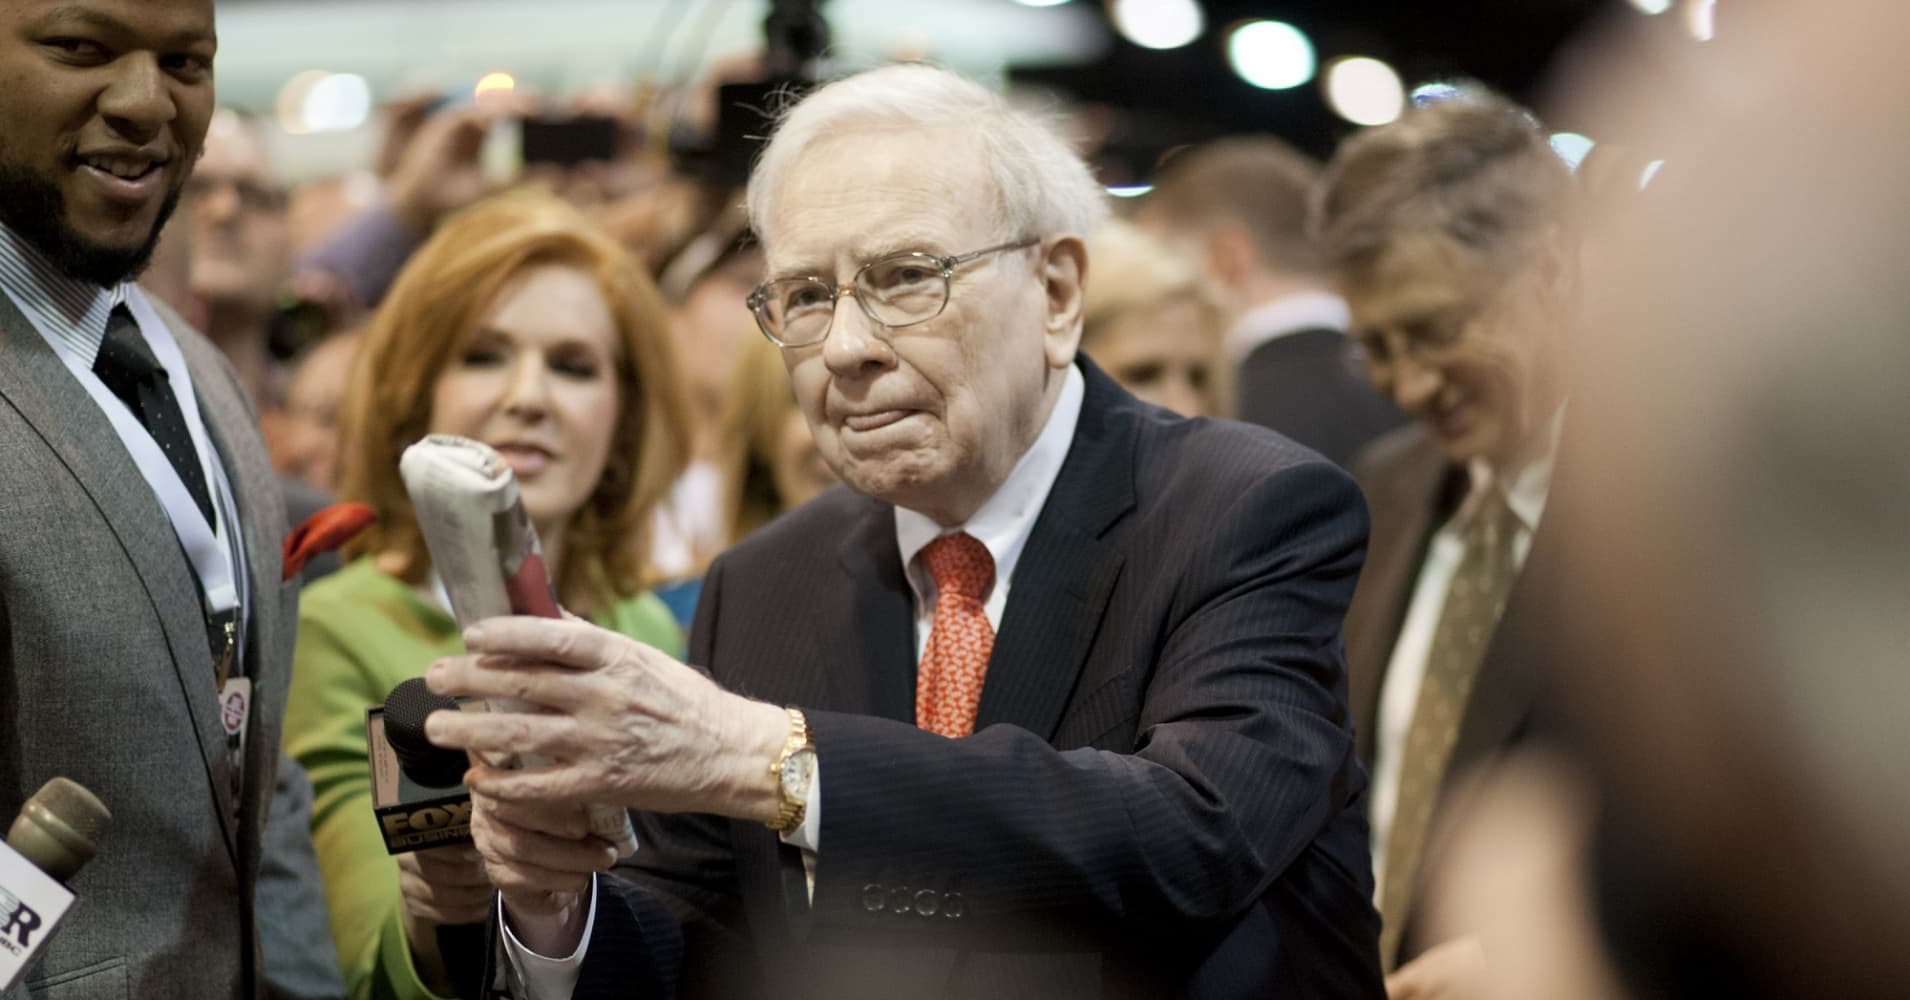 Warren Buffett, chairman and chief executive officer of Berkshire Hathaway Inc., prepares to throw a newspaper as he tours the exhibition floor prior to the start of the Berkshire shareholders meeting on Saturday, May 4, 2013.